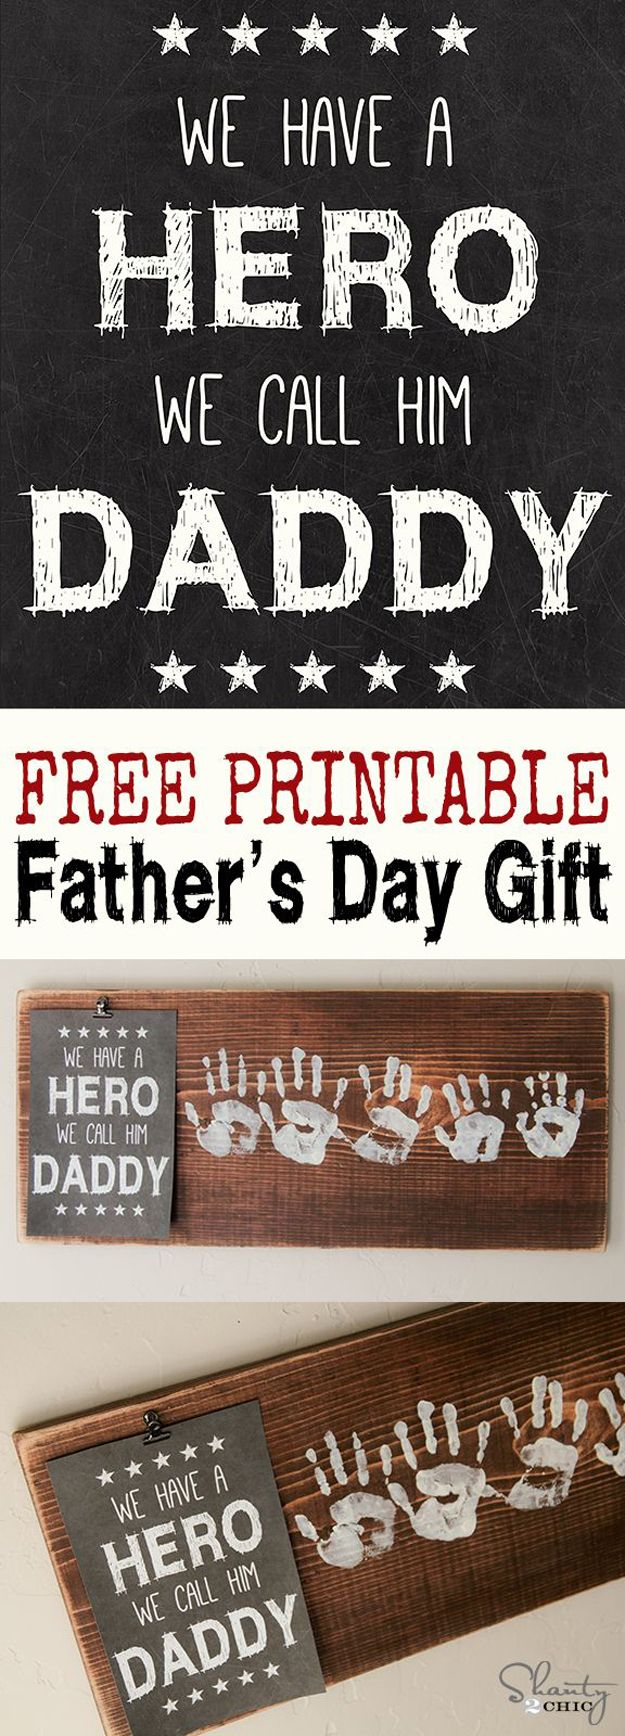 Best 25+ Fathers day ideas for husband ideas on Pinterest ...